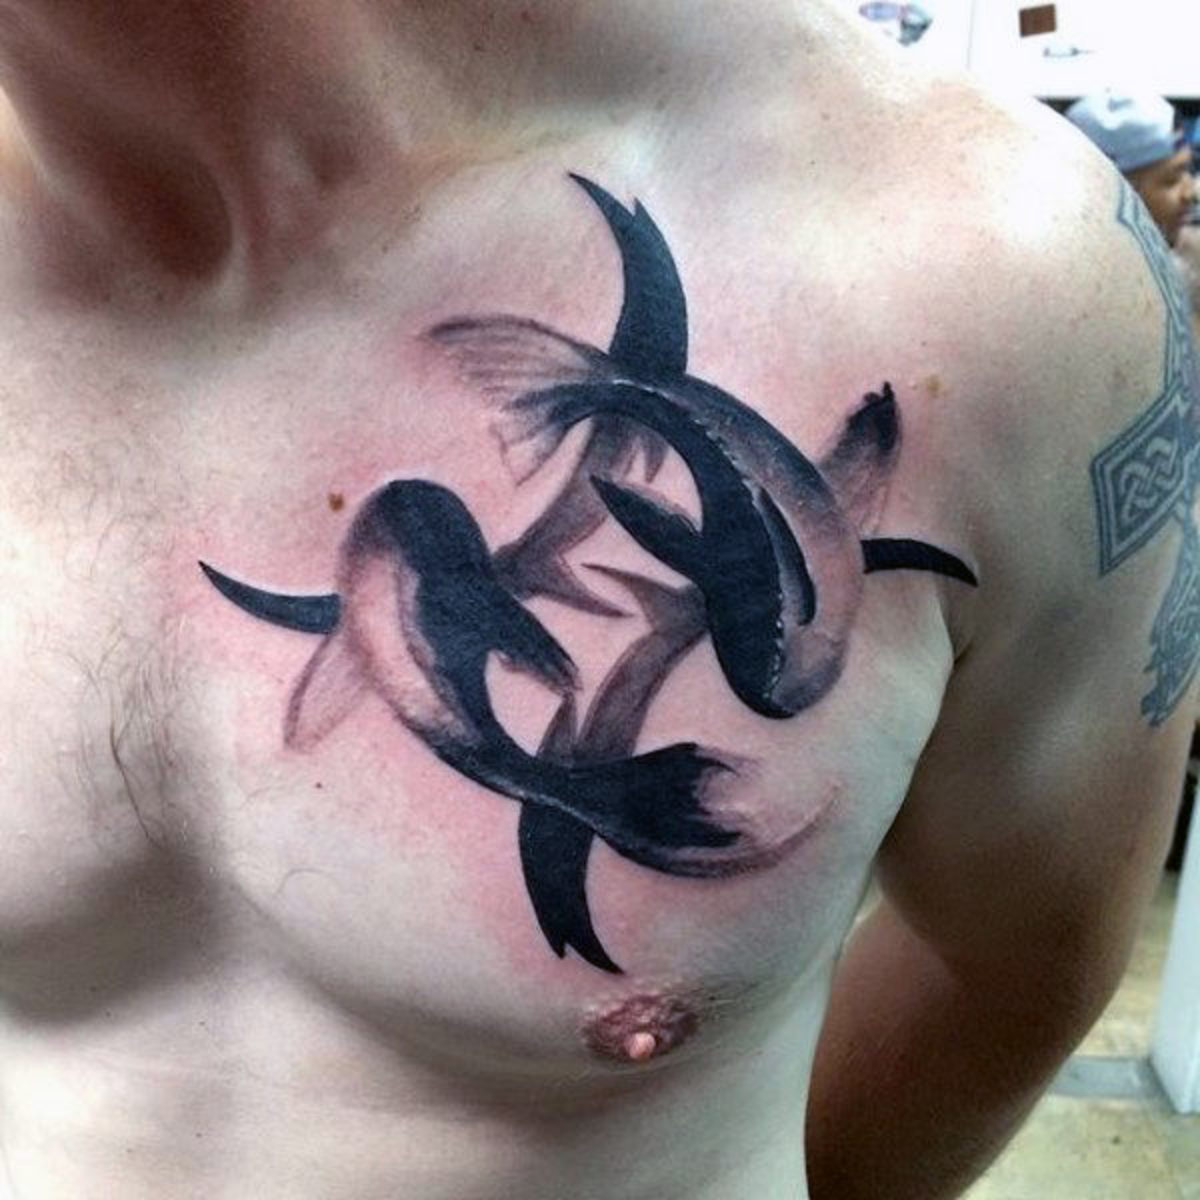 00f5a288a 45 Pisces Tattoos For Men and Women to Celebrate Pisces Season ...